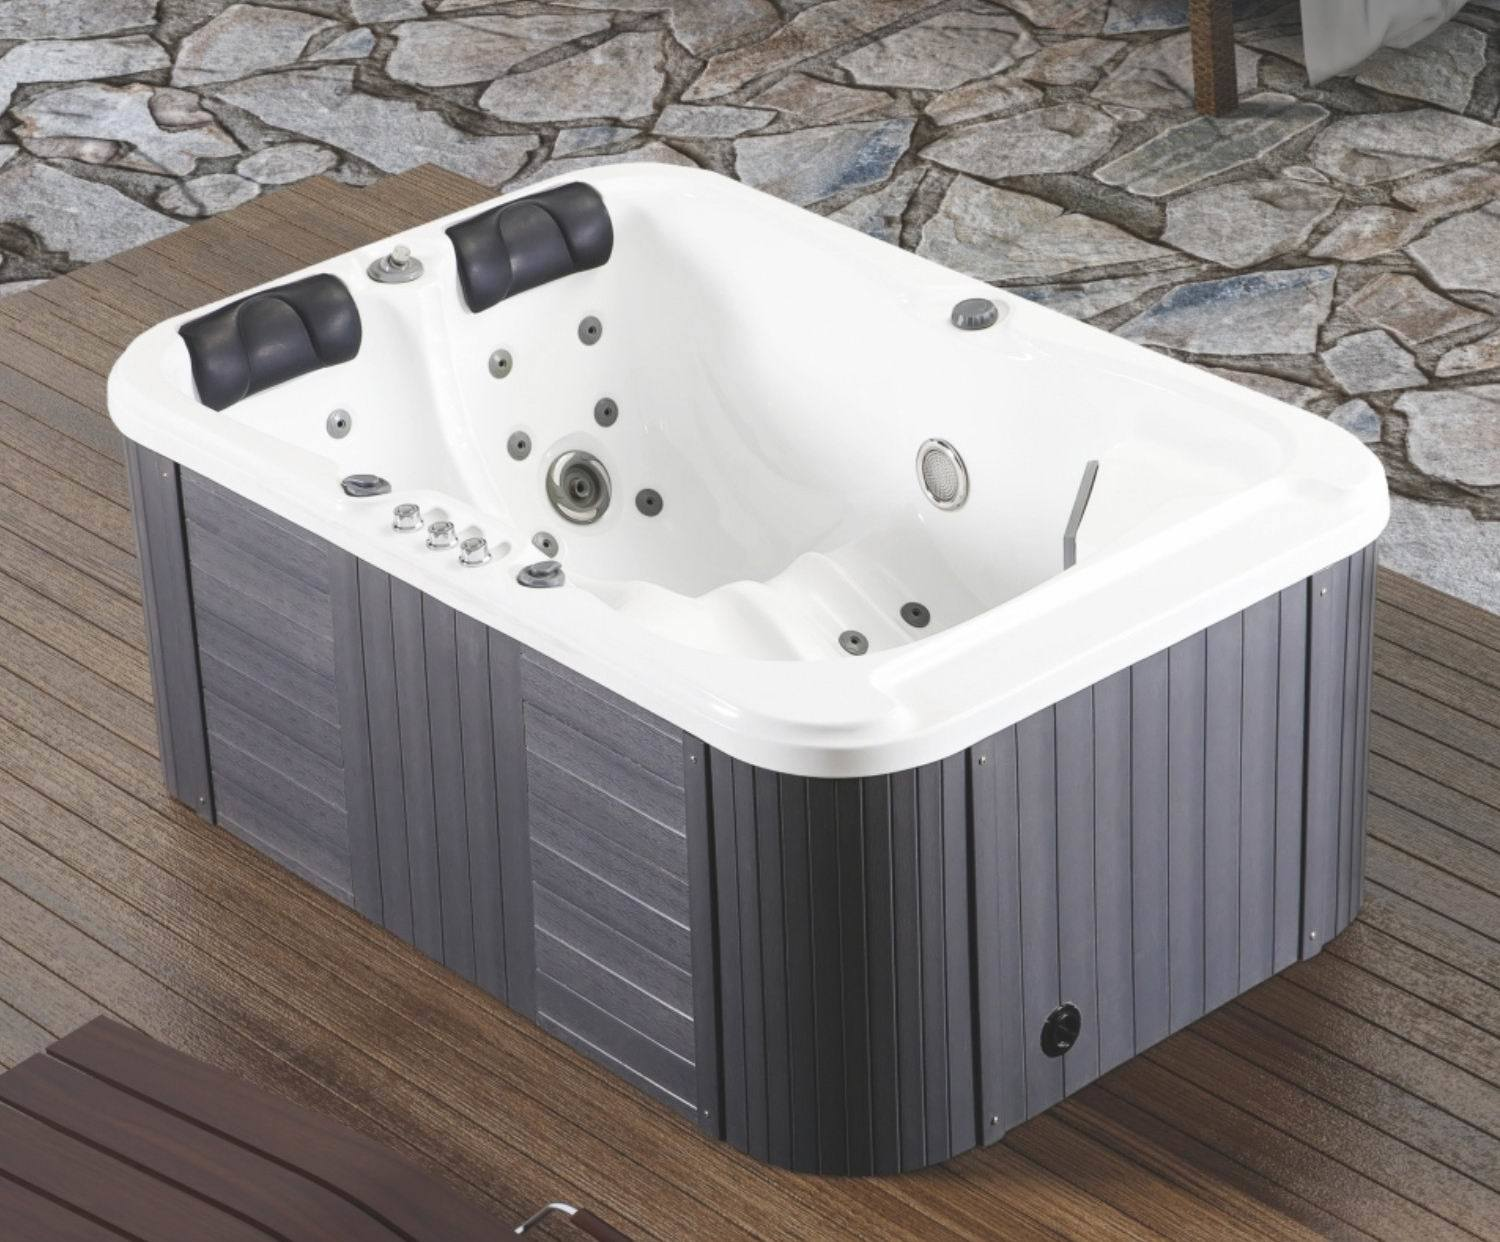 tub leather ideas top strong most design swim for tubs new stairs essence appealing co pools evolution person fascinating plug in expensive with side soft outdoor spa hot prices comfy spas blue and